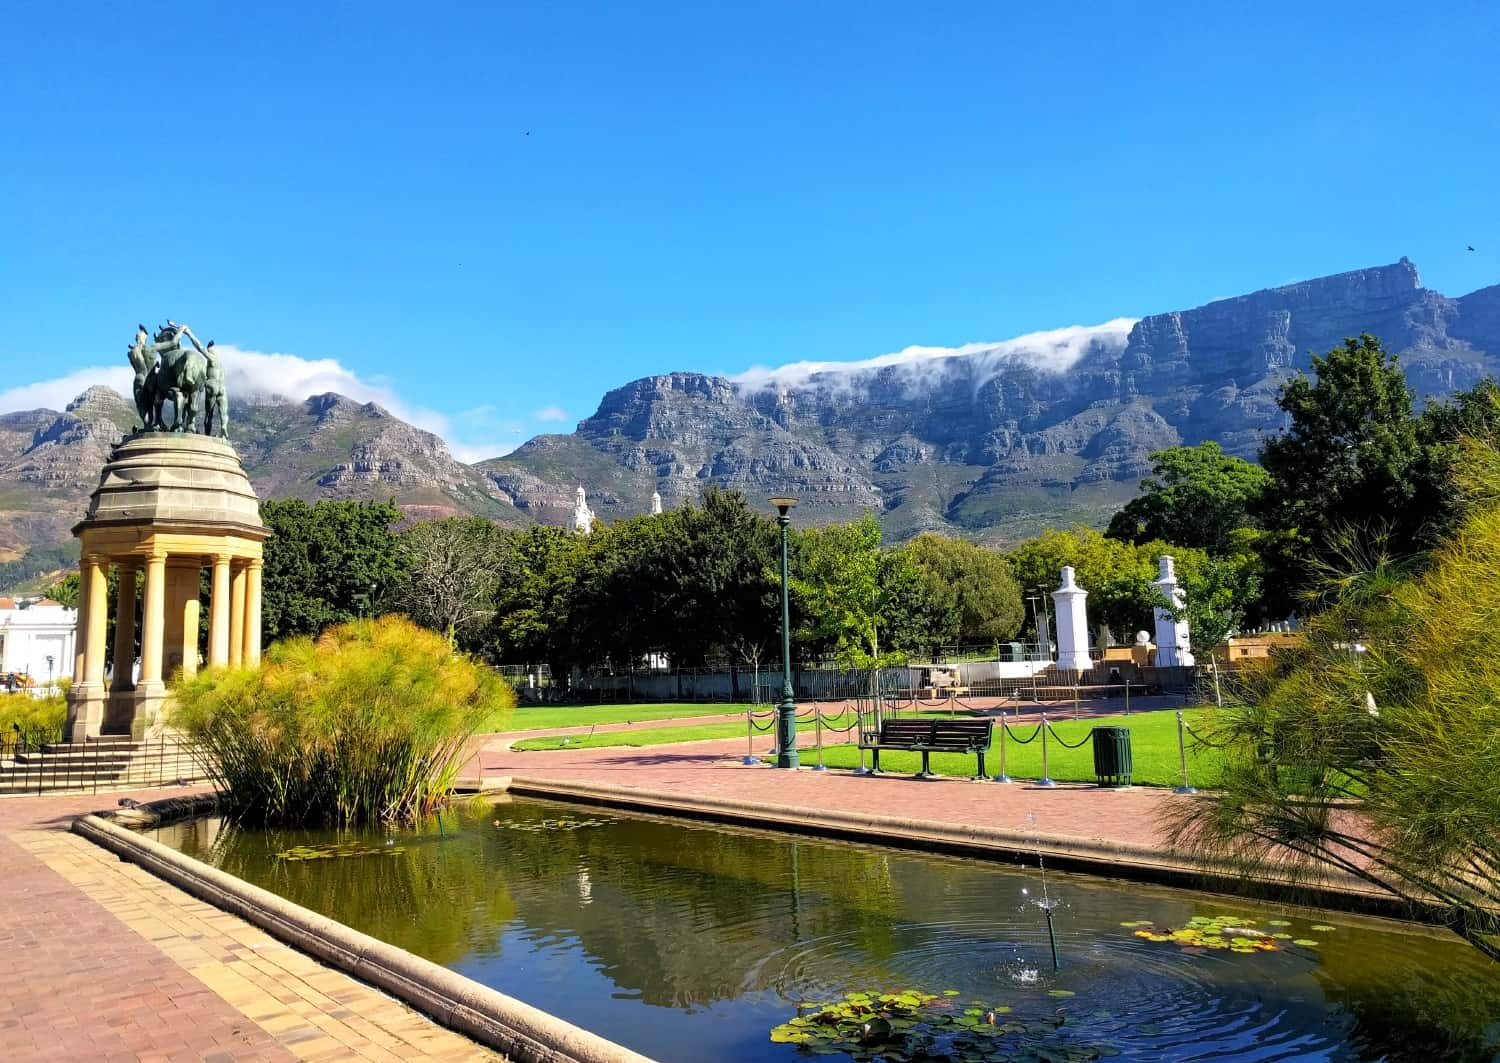 Cape Town gardens and fountain